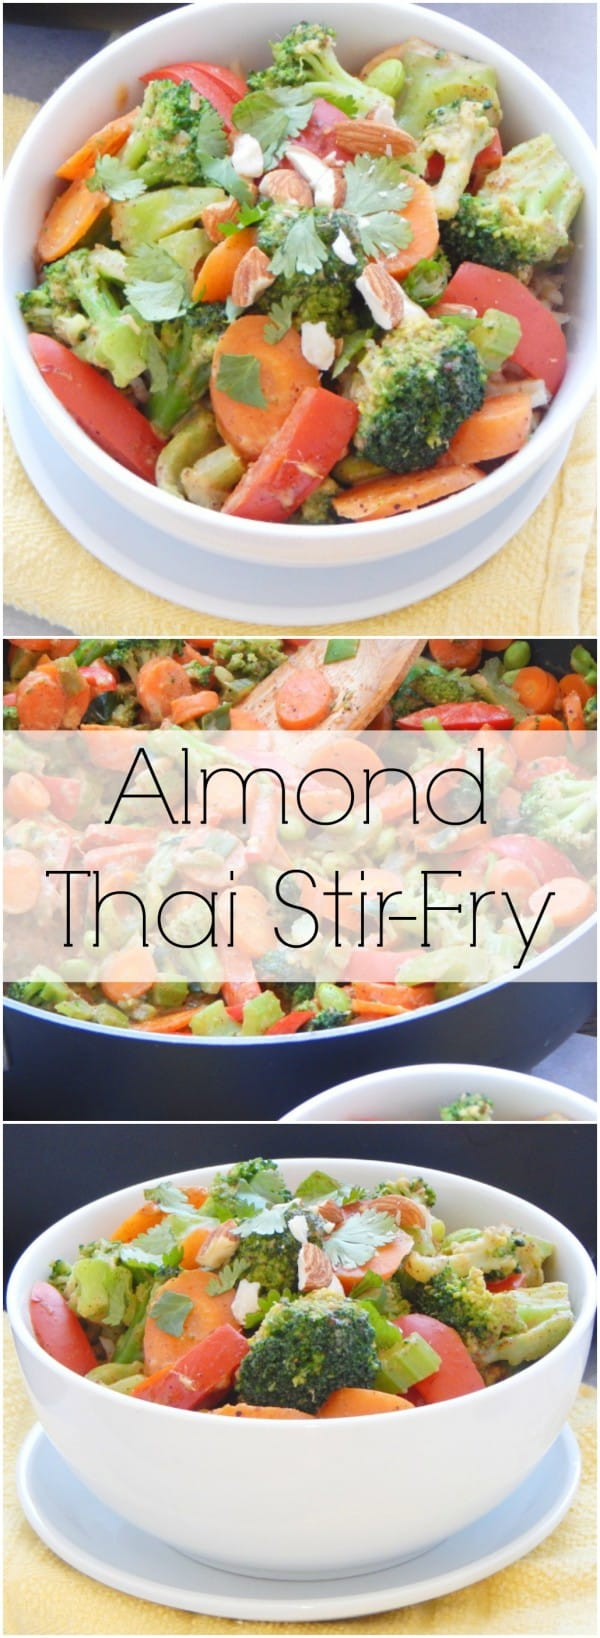 Almond Thai Stir-Fry